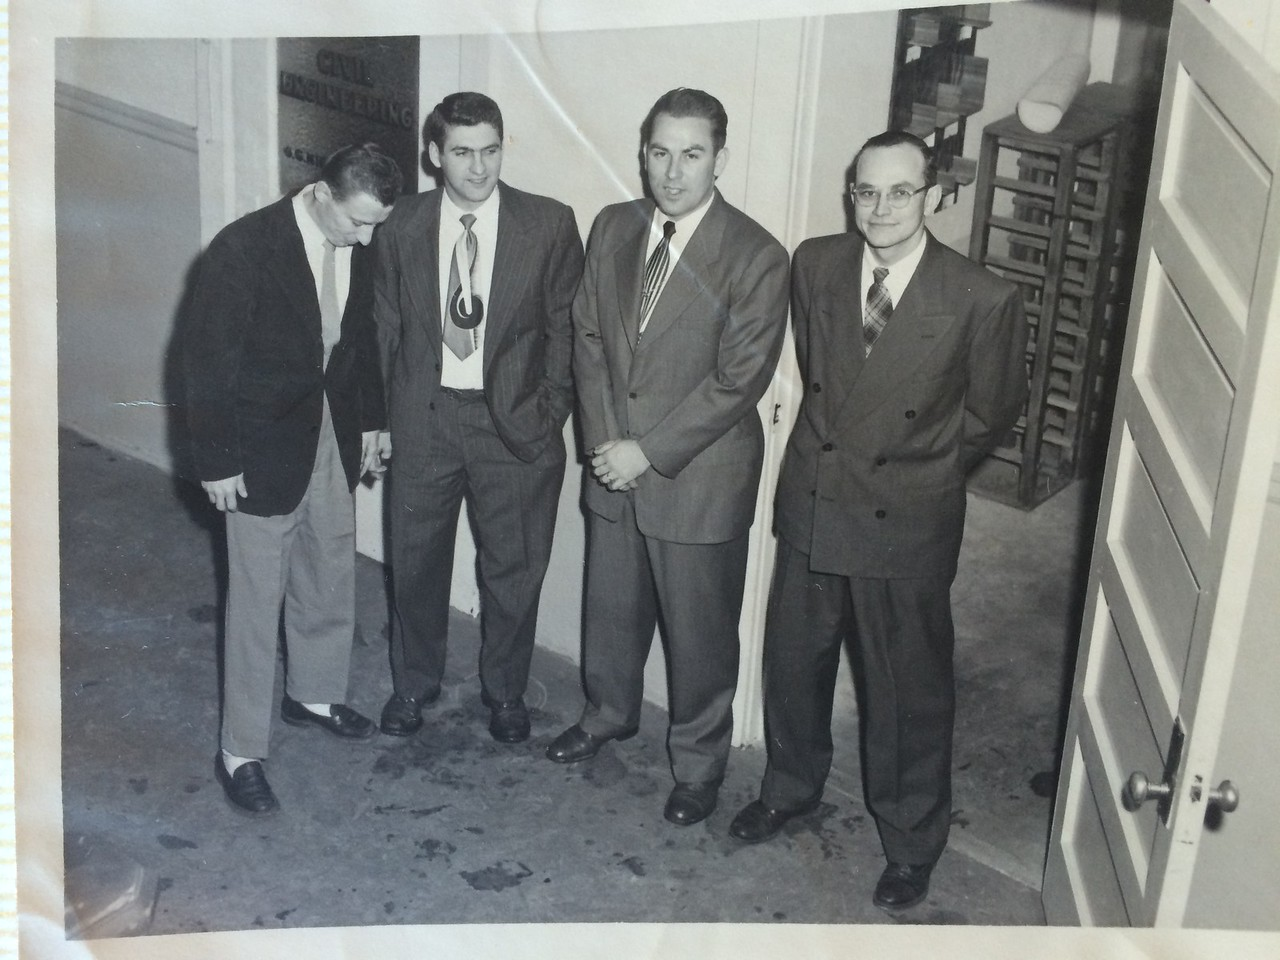 Frank Davis at Tri-State College, Indiana.  President of the Civil Engineering Society 1951.